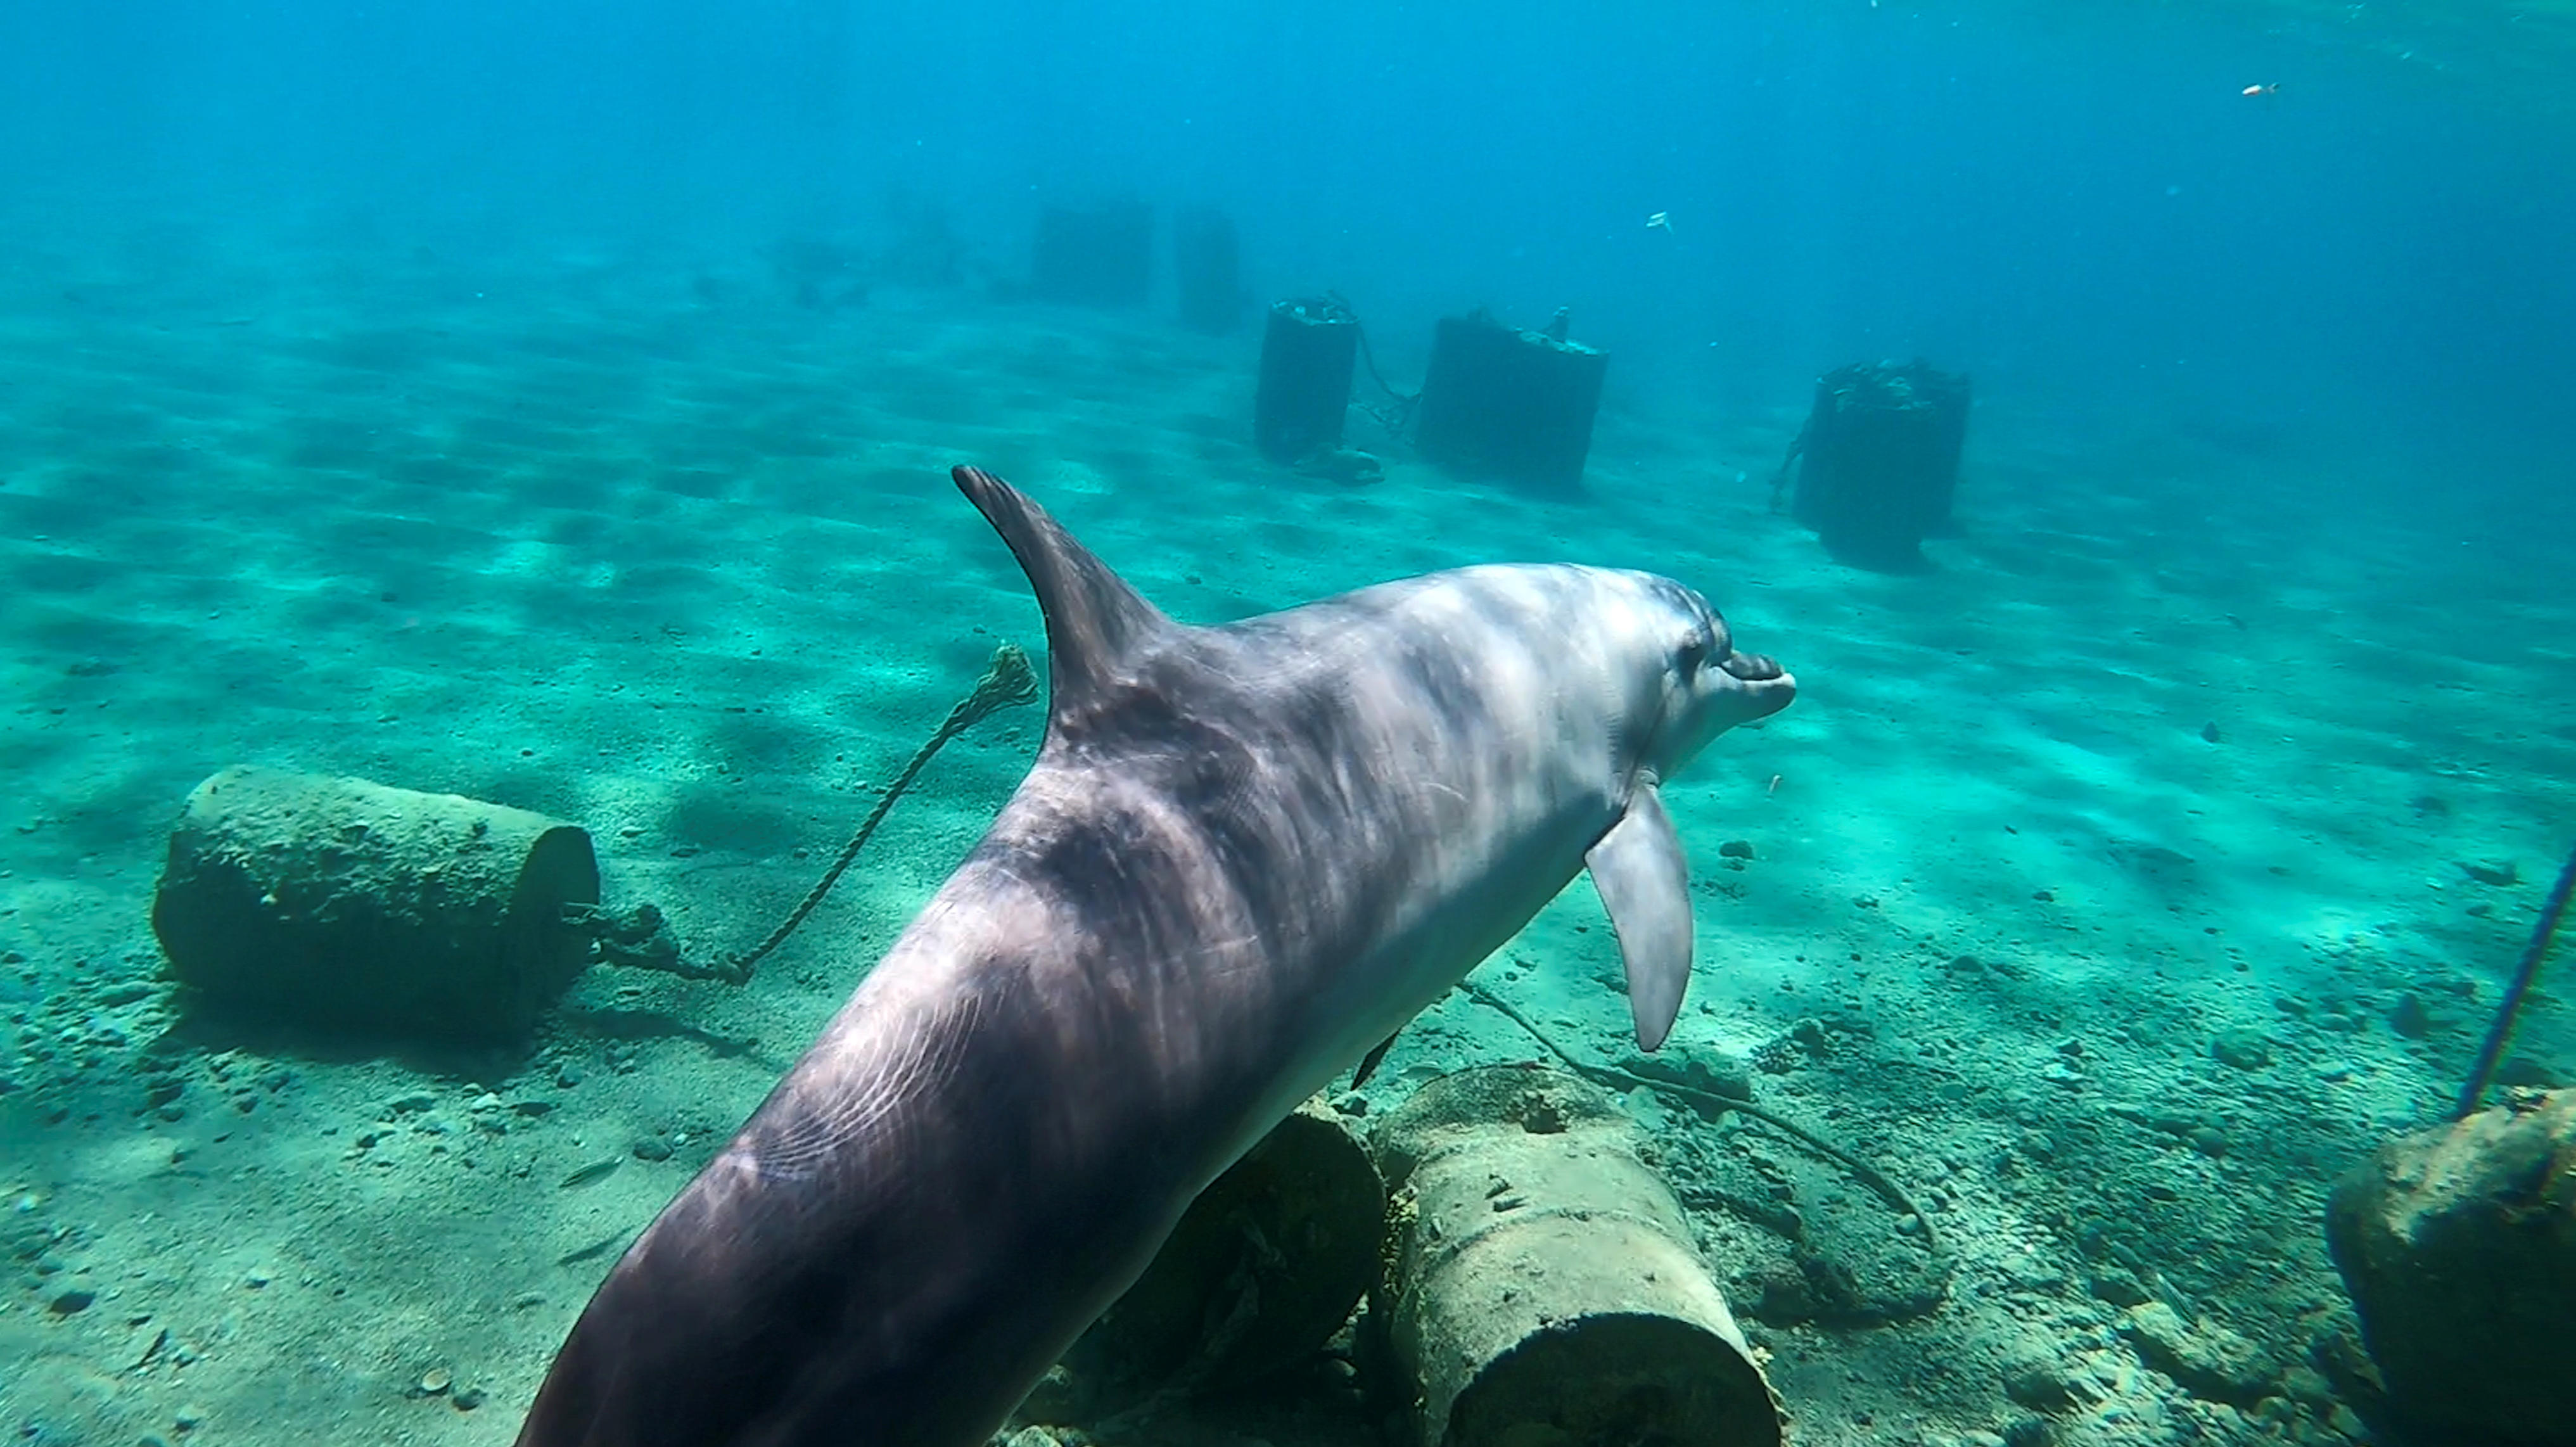 A dolphin swims among the corals at the reef in Eilat